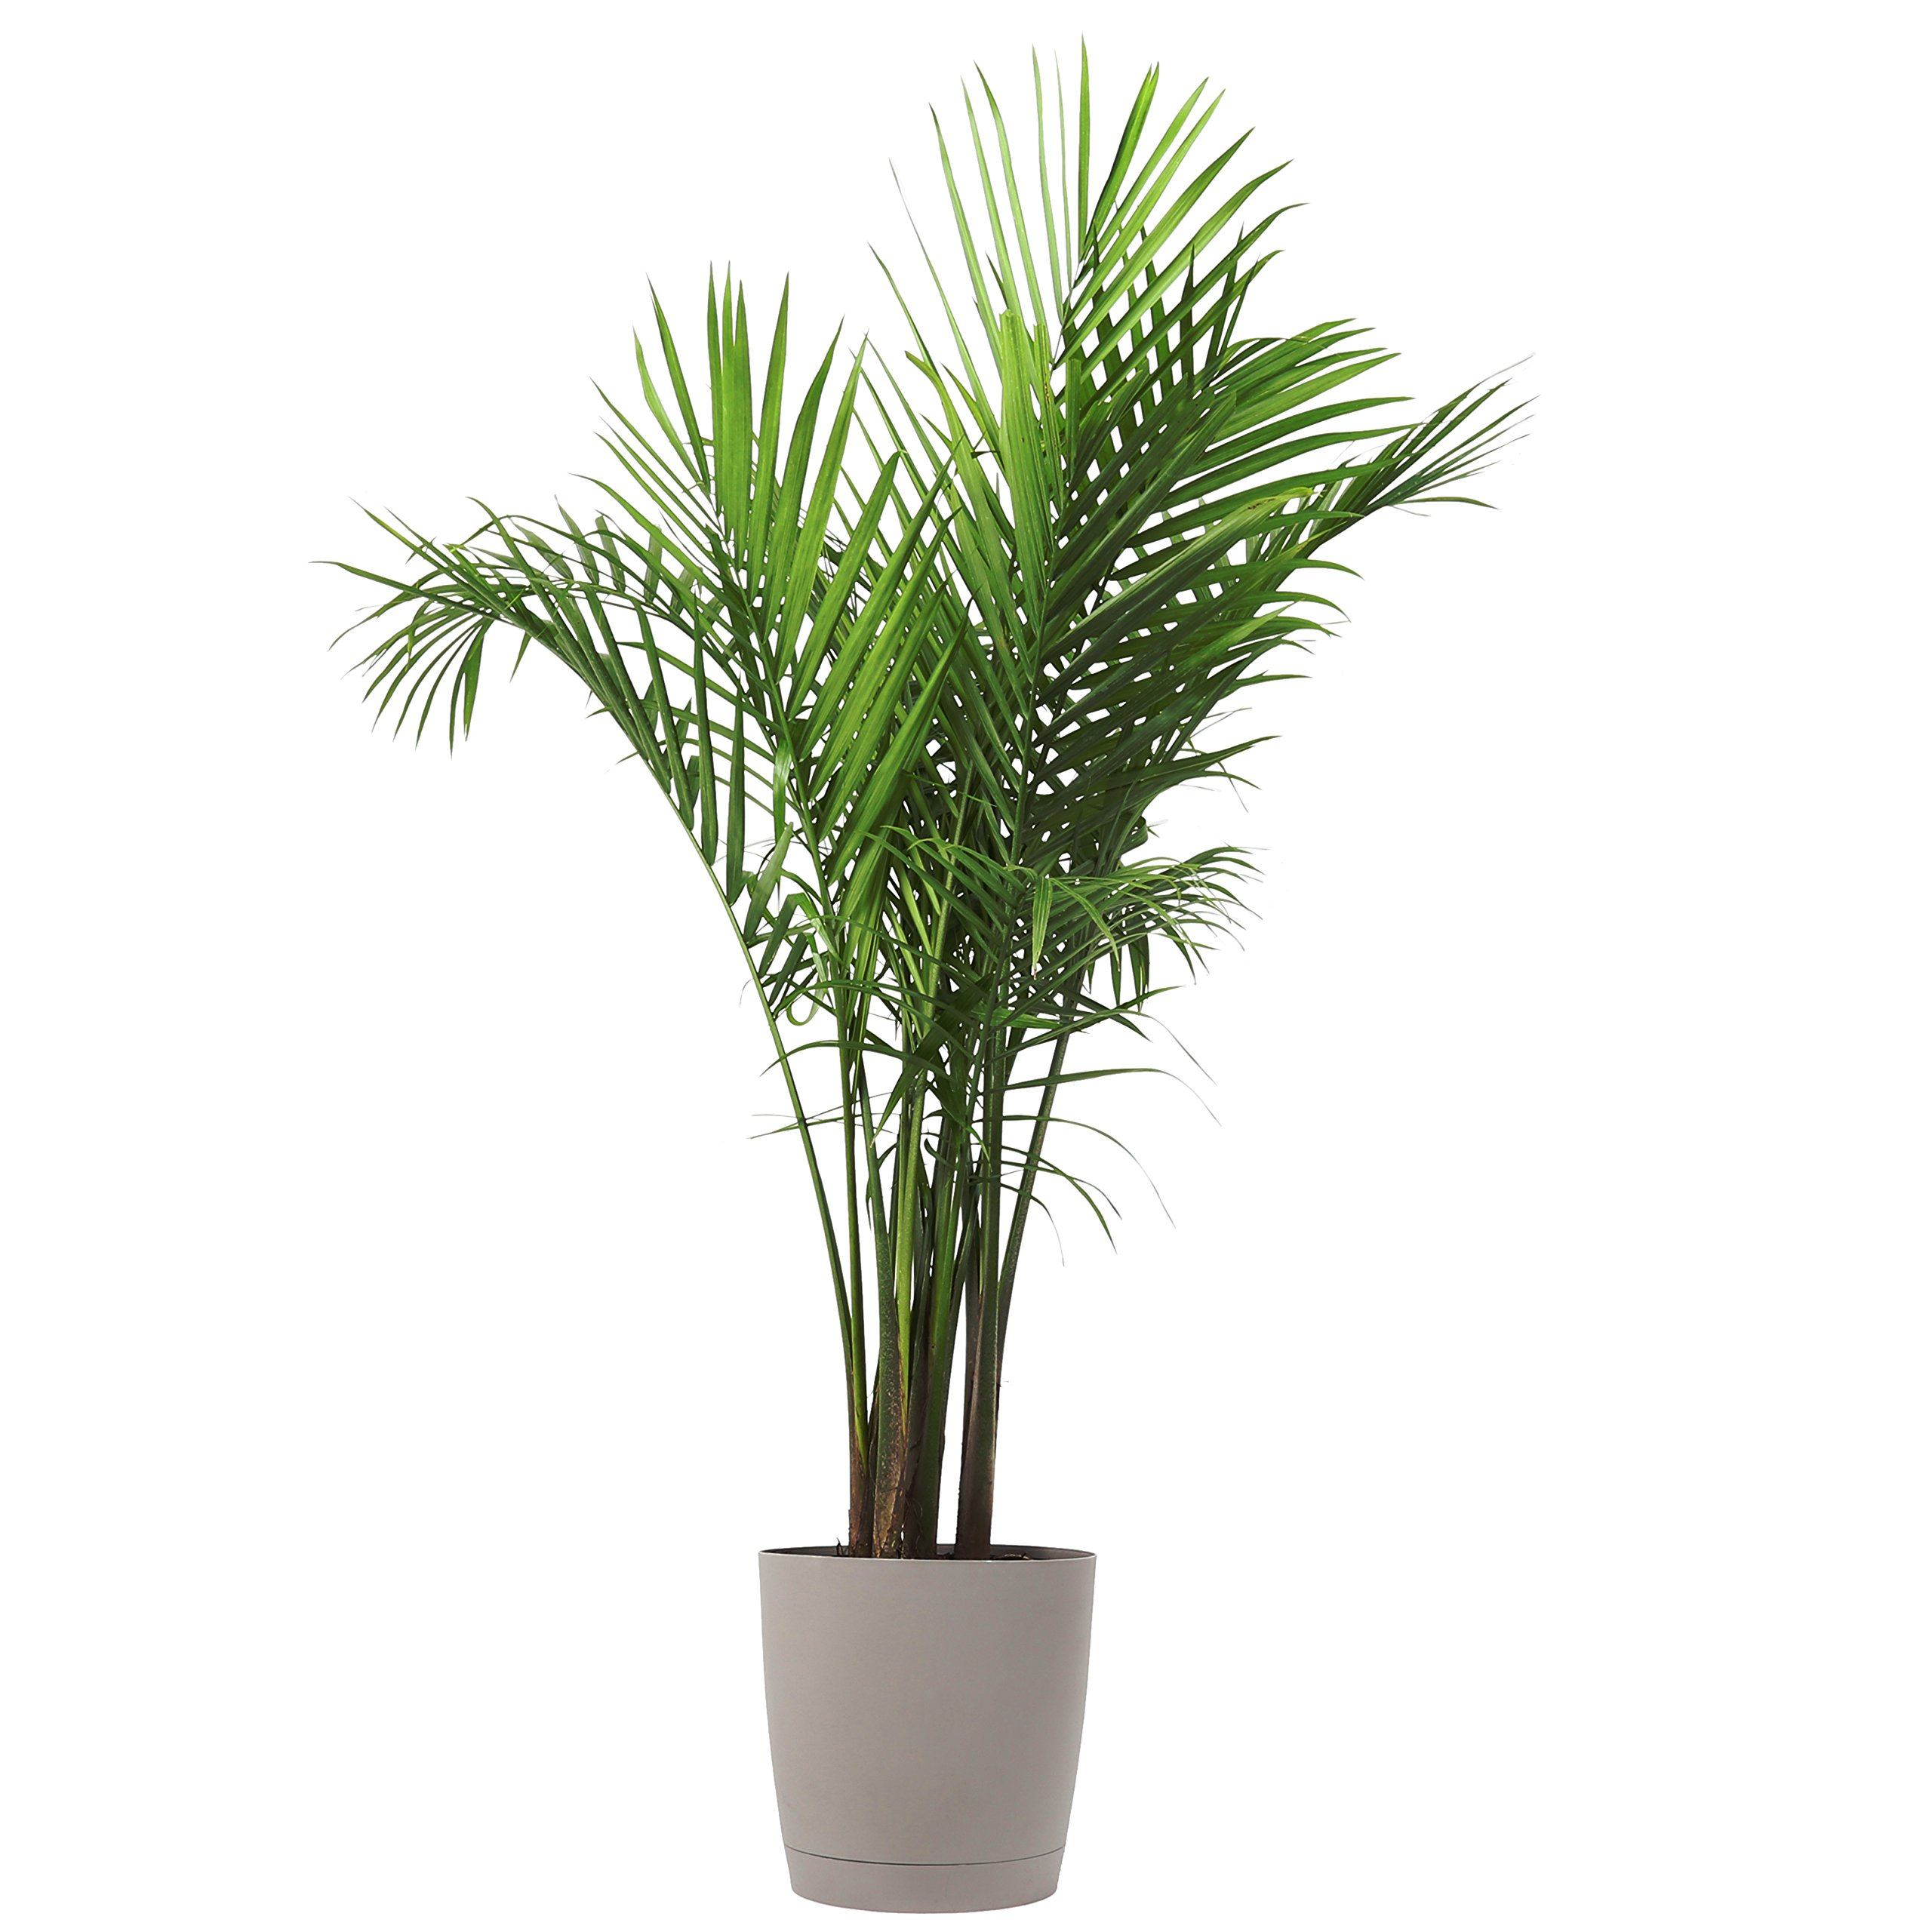 Costa Farms Majesty Palm Tree, Live Indoor Plant, 3 to 4-Feet Tall, Ships with Décor Planter, Fresh From Our Farm, Excellent Gift or Home Décor by Costa Farms